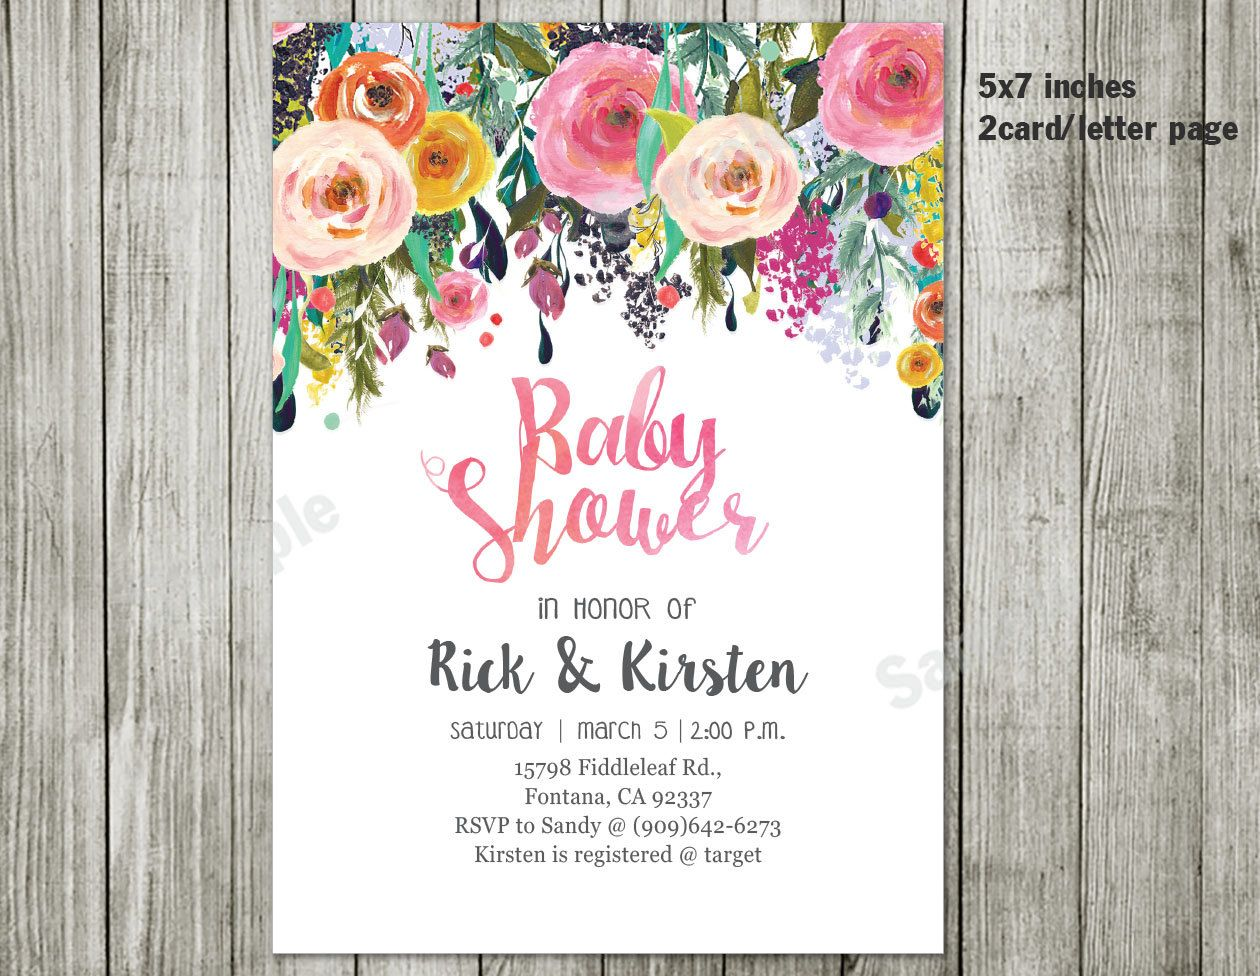 Water color flower invitation - Baby shower - garden floral baby ...